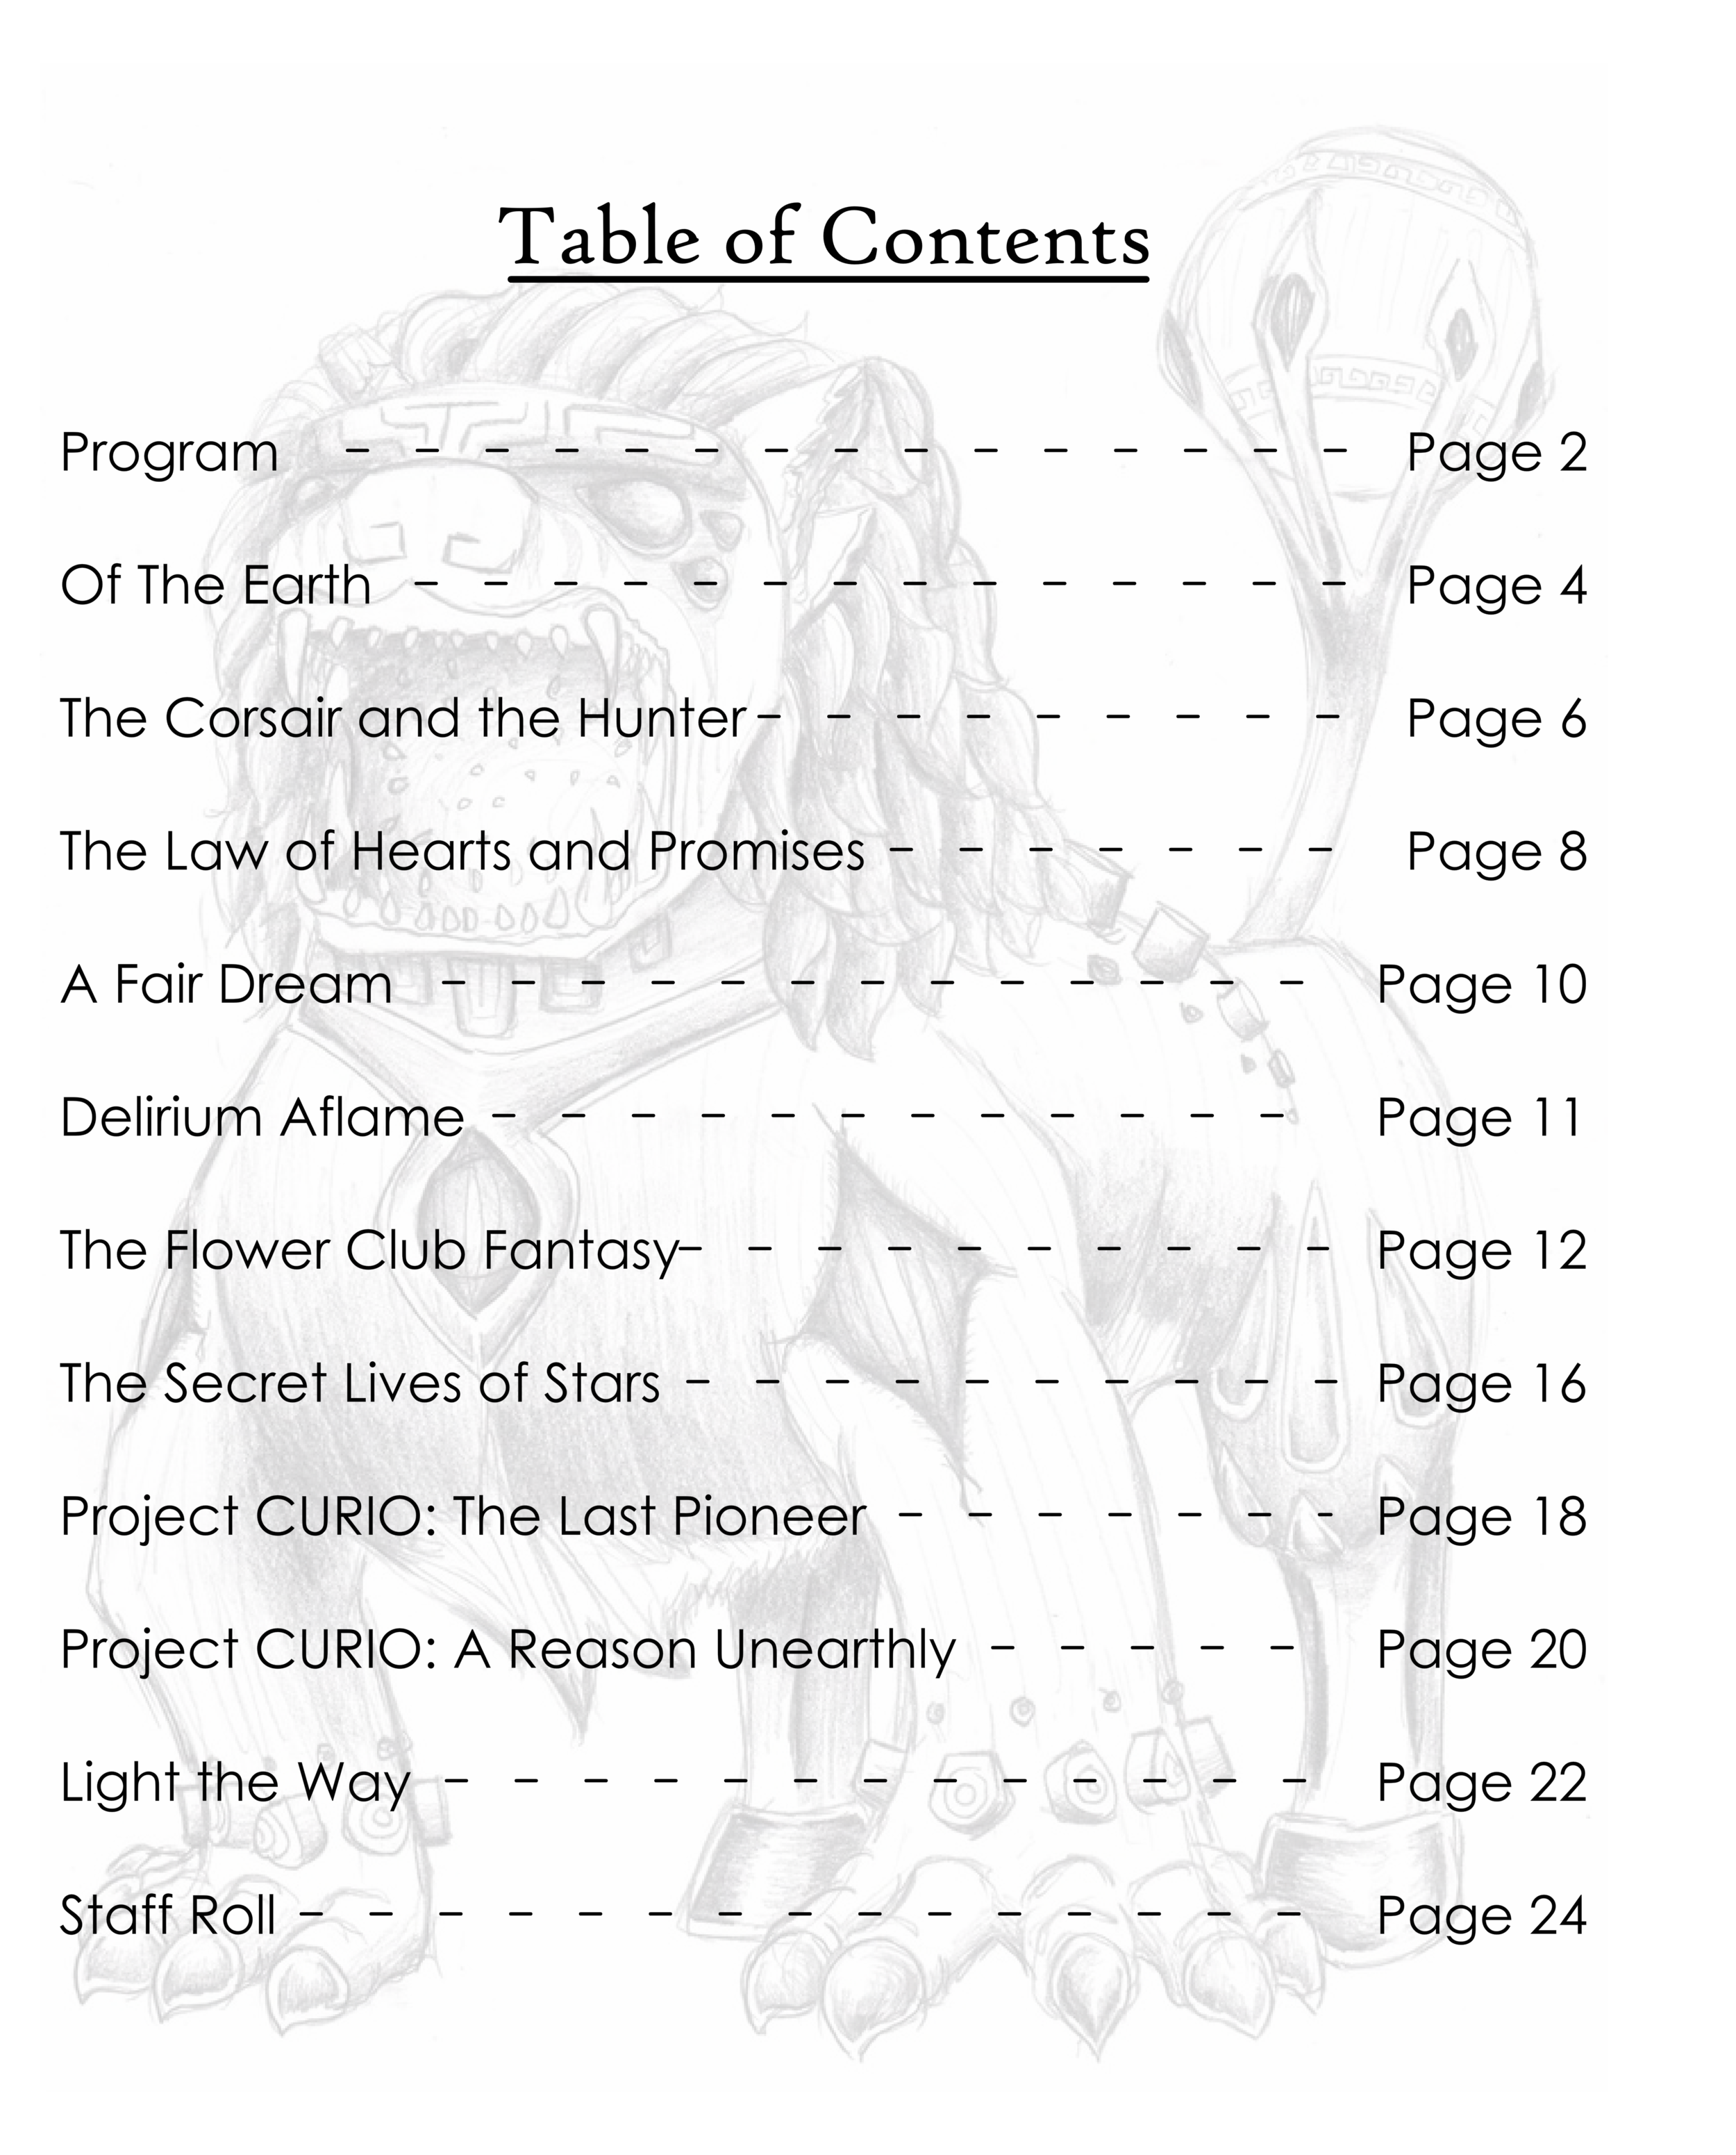 Program Booklet (print)0003.png